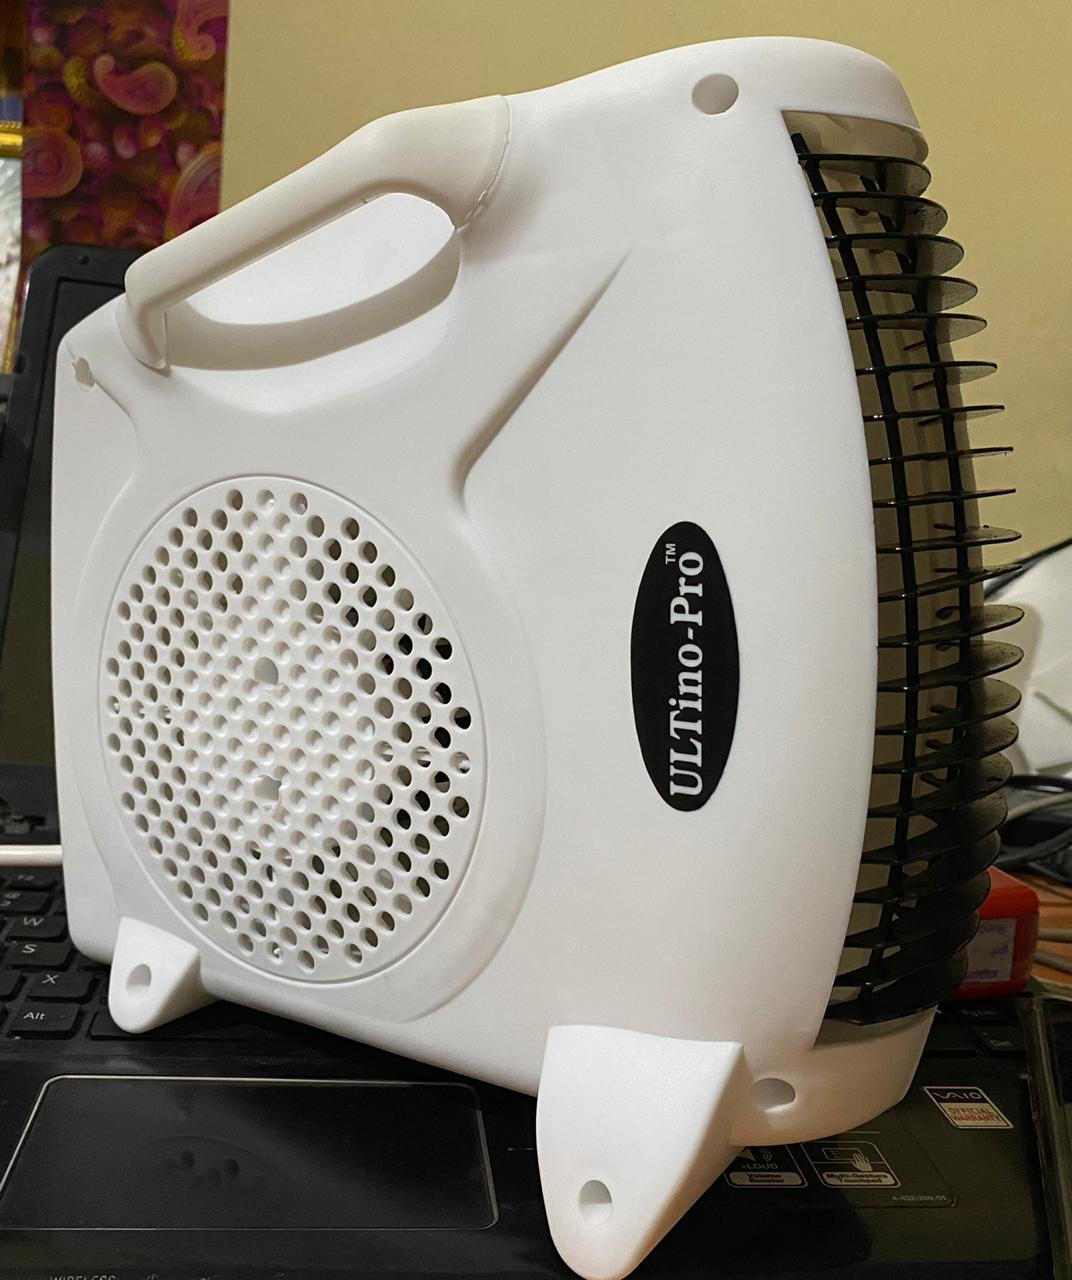 Ultino-pro Indias Portable Room Heater